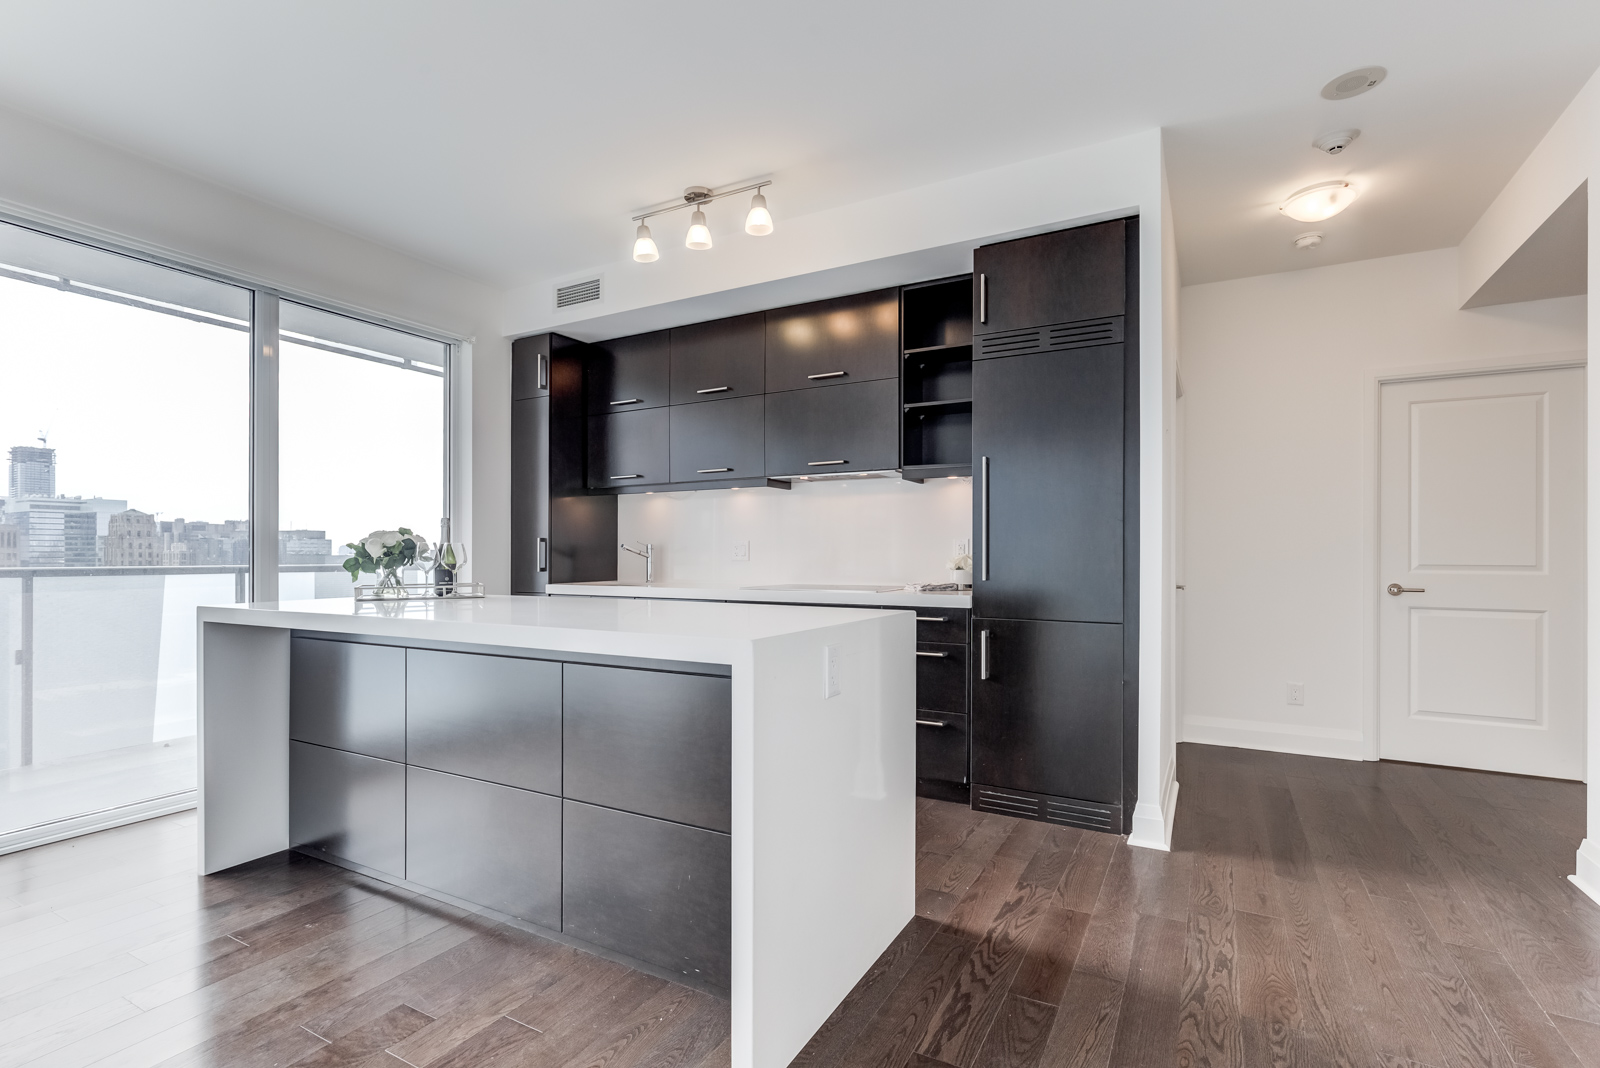 Image of kitchen island in front and kitchen cabinets in back.